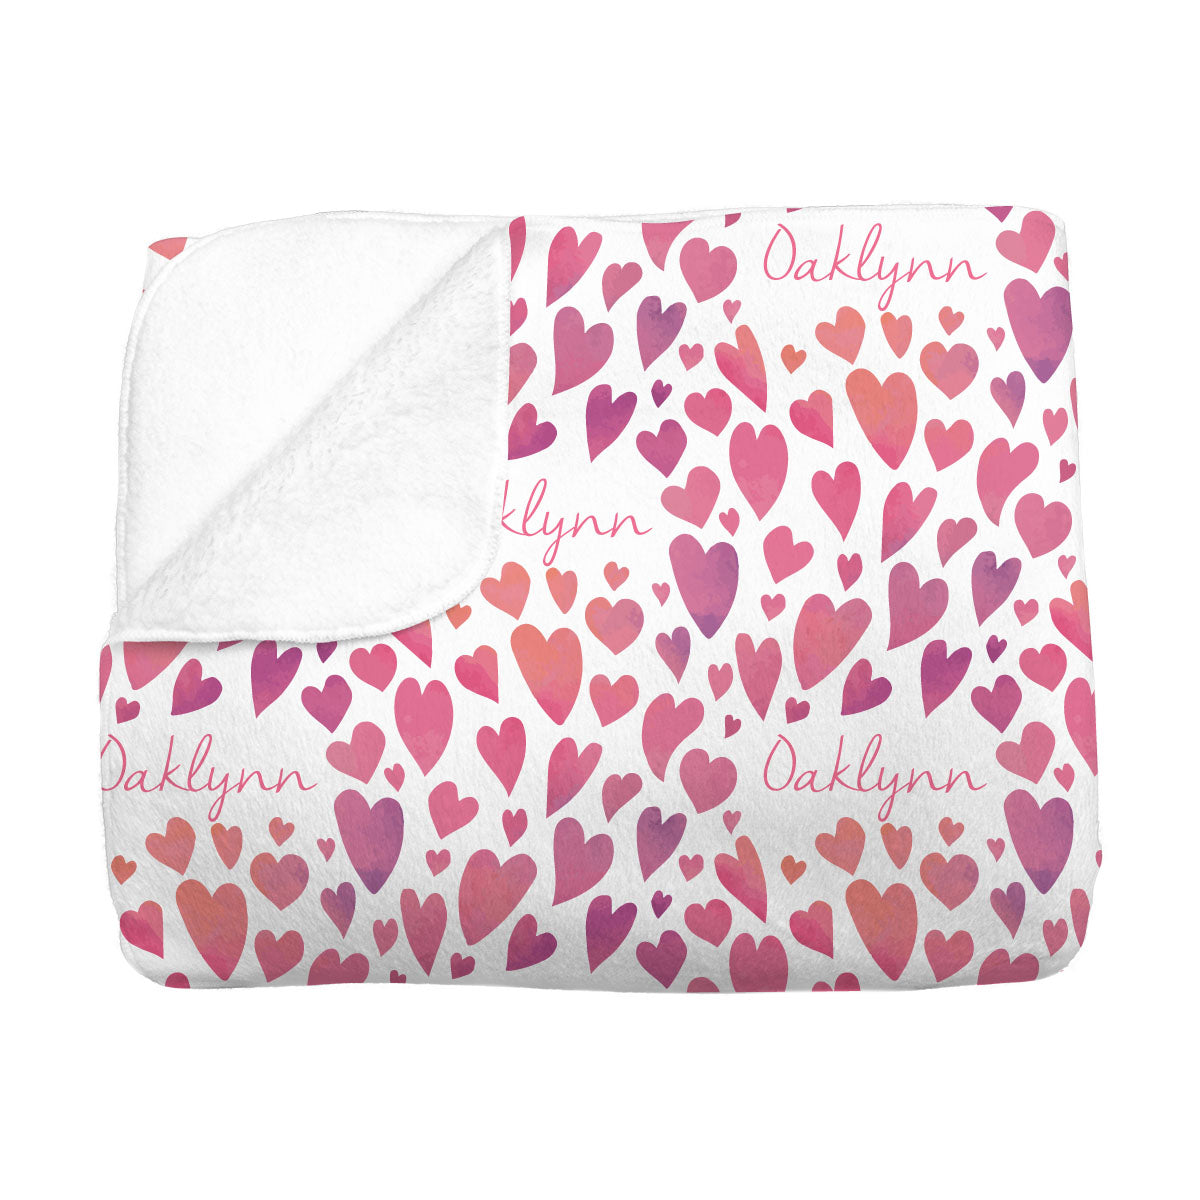 Oaklynn's Watercolor Hearts | Big Kid Blanket